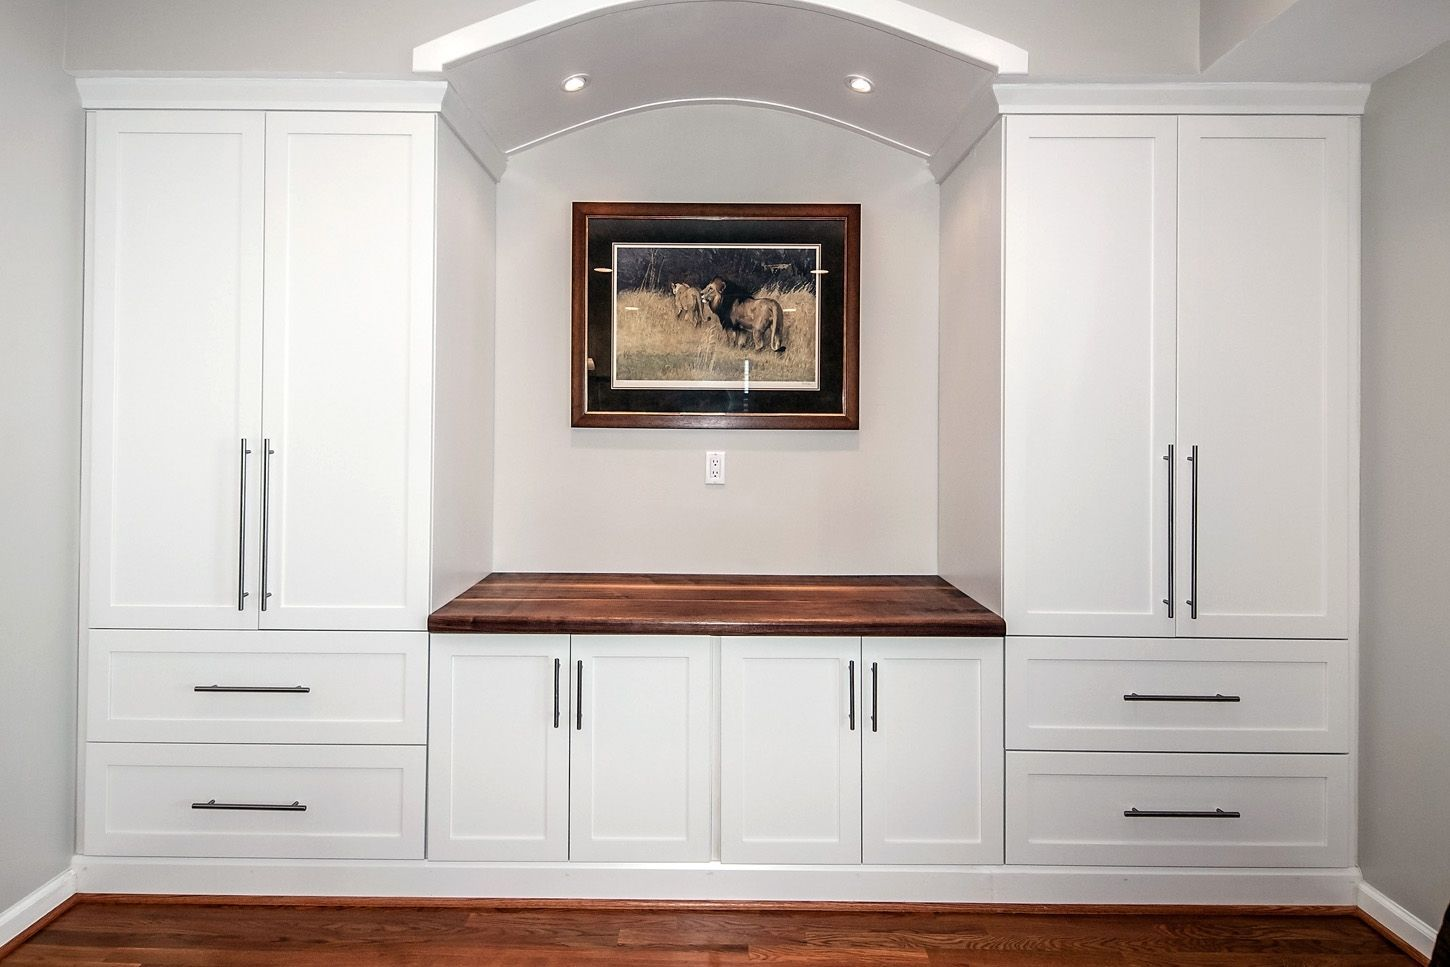 White Wall Unit custom built-in counter top & wall unitdesignjeff